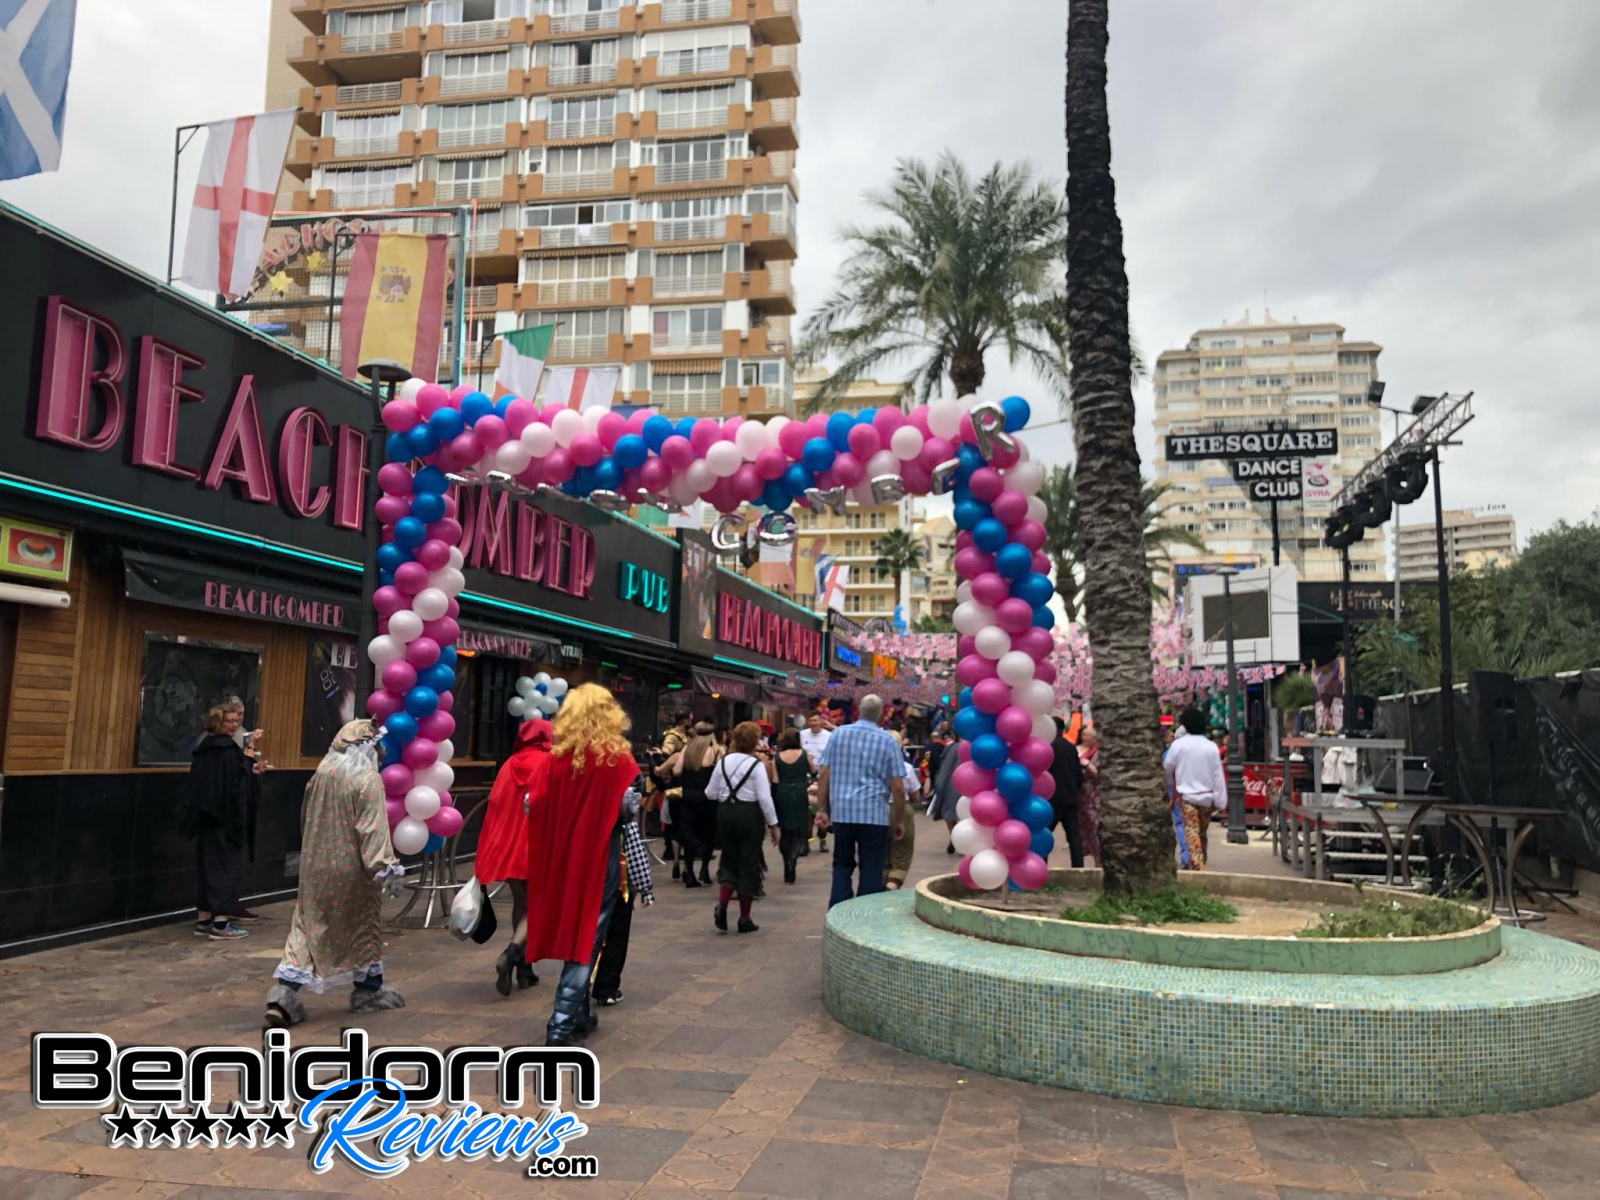 Benidorm-Fiestas-2019-Fancy-Dress-92